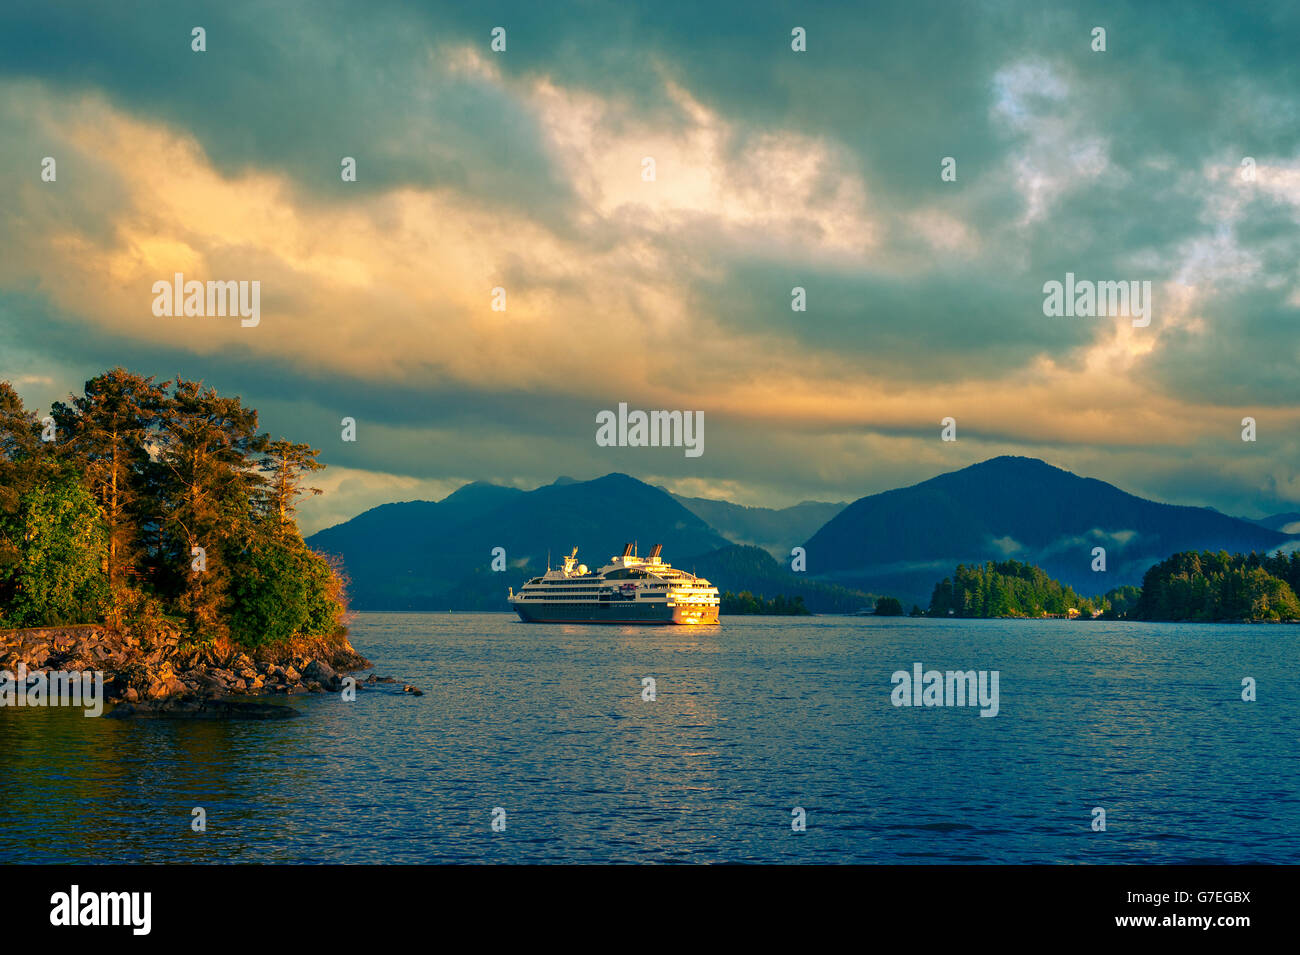 The cruise ship, Le Boreal anchored in Eastern Channel, Sitka, Alaska, USA - Stock Image